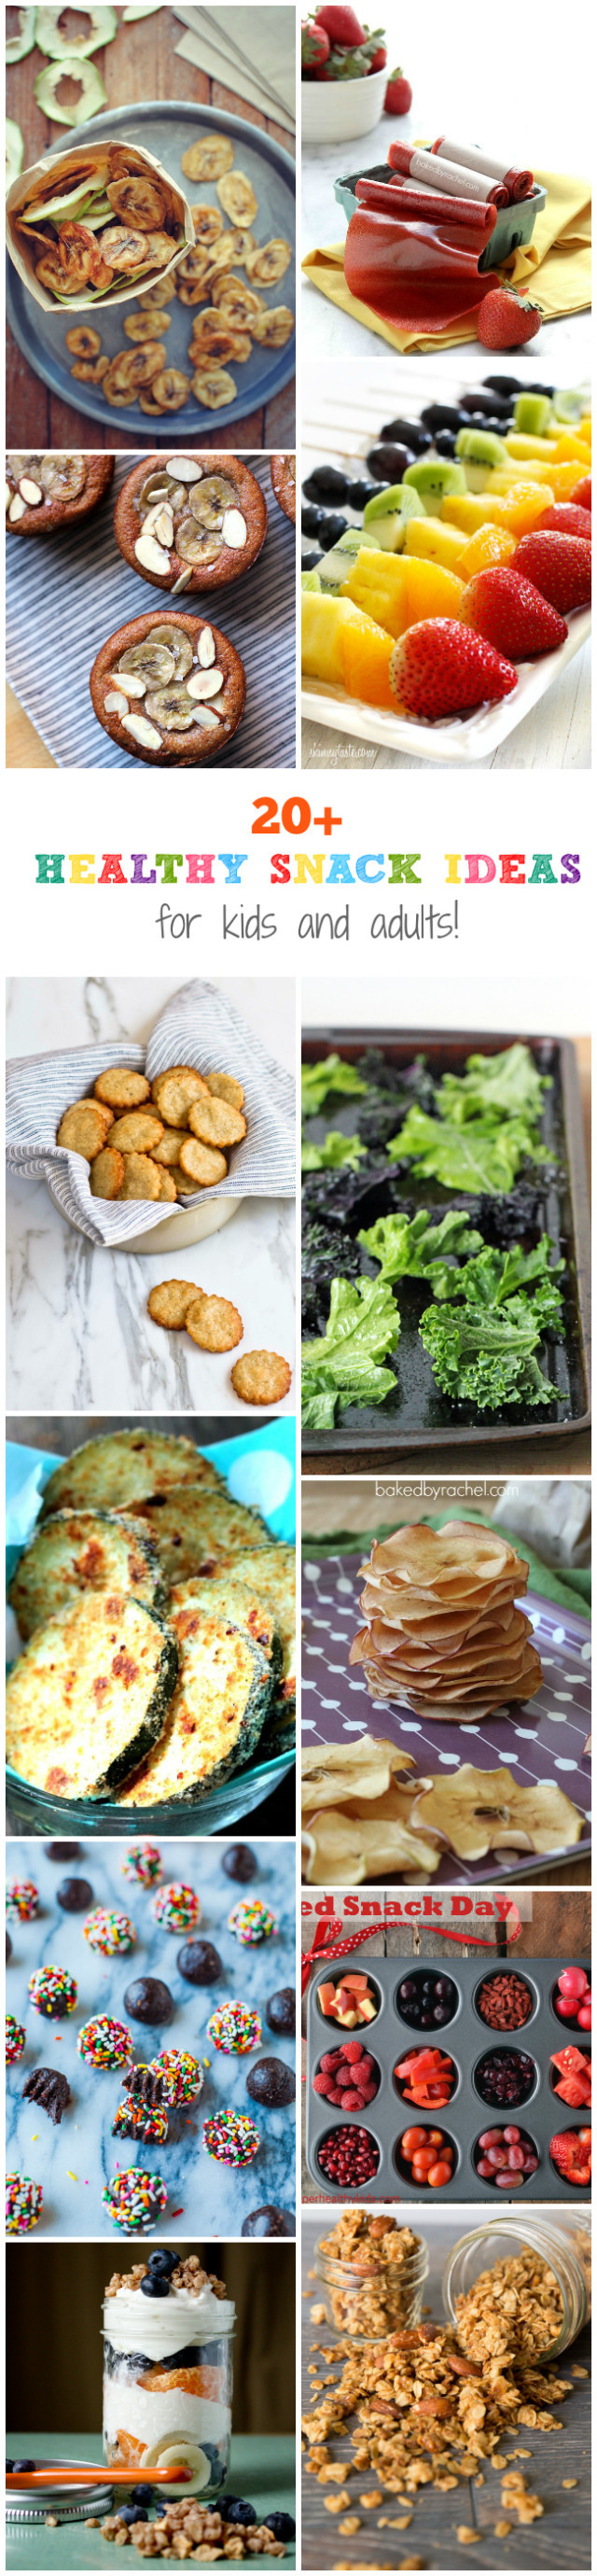 Homemade Healthy Snacks For Adults  20 Healthy Snack Ideas For Kids and Adults